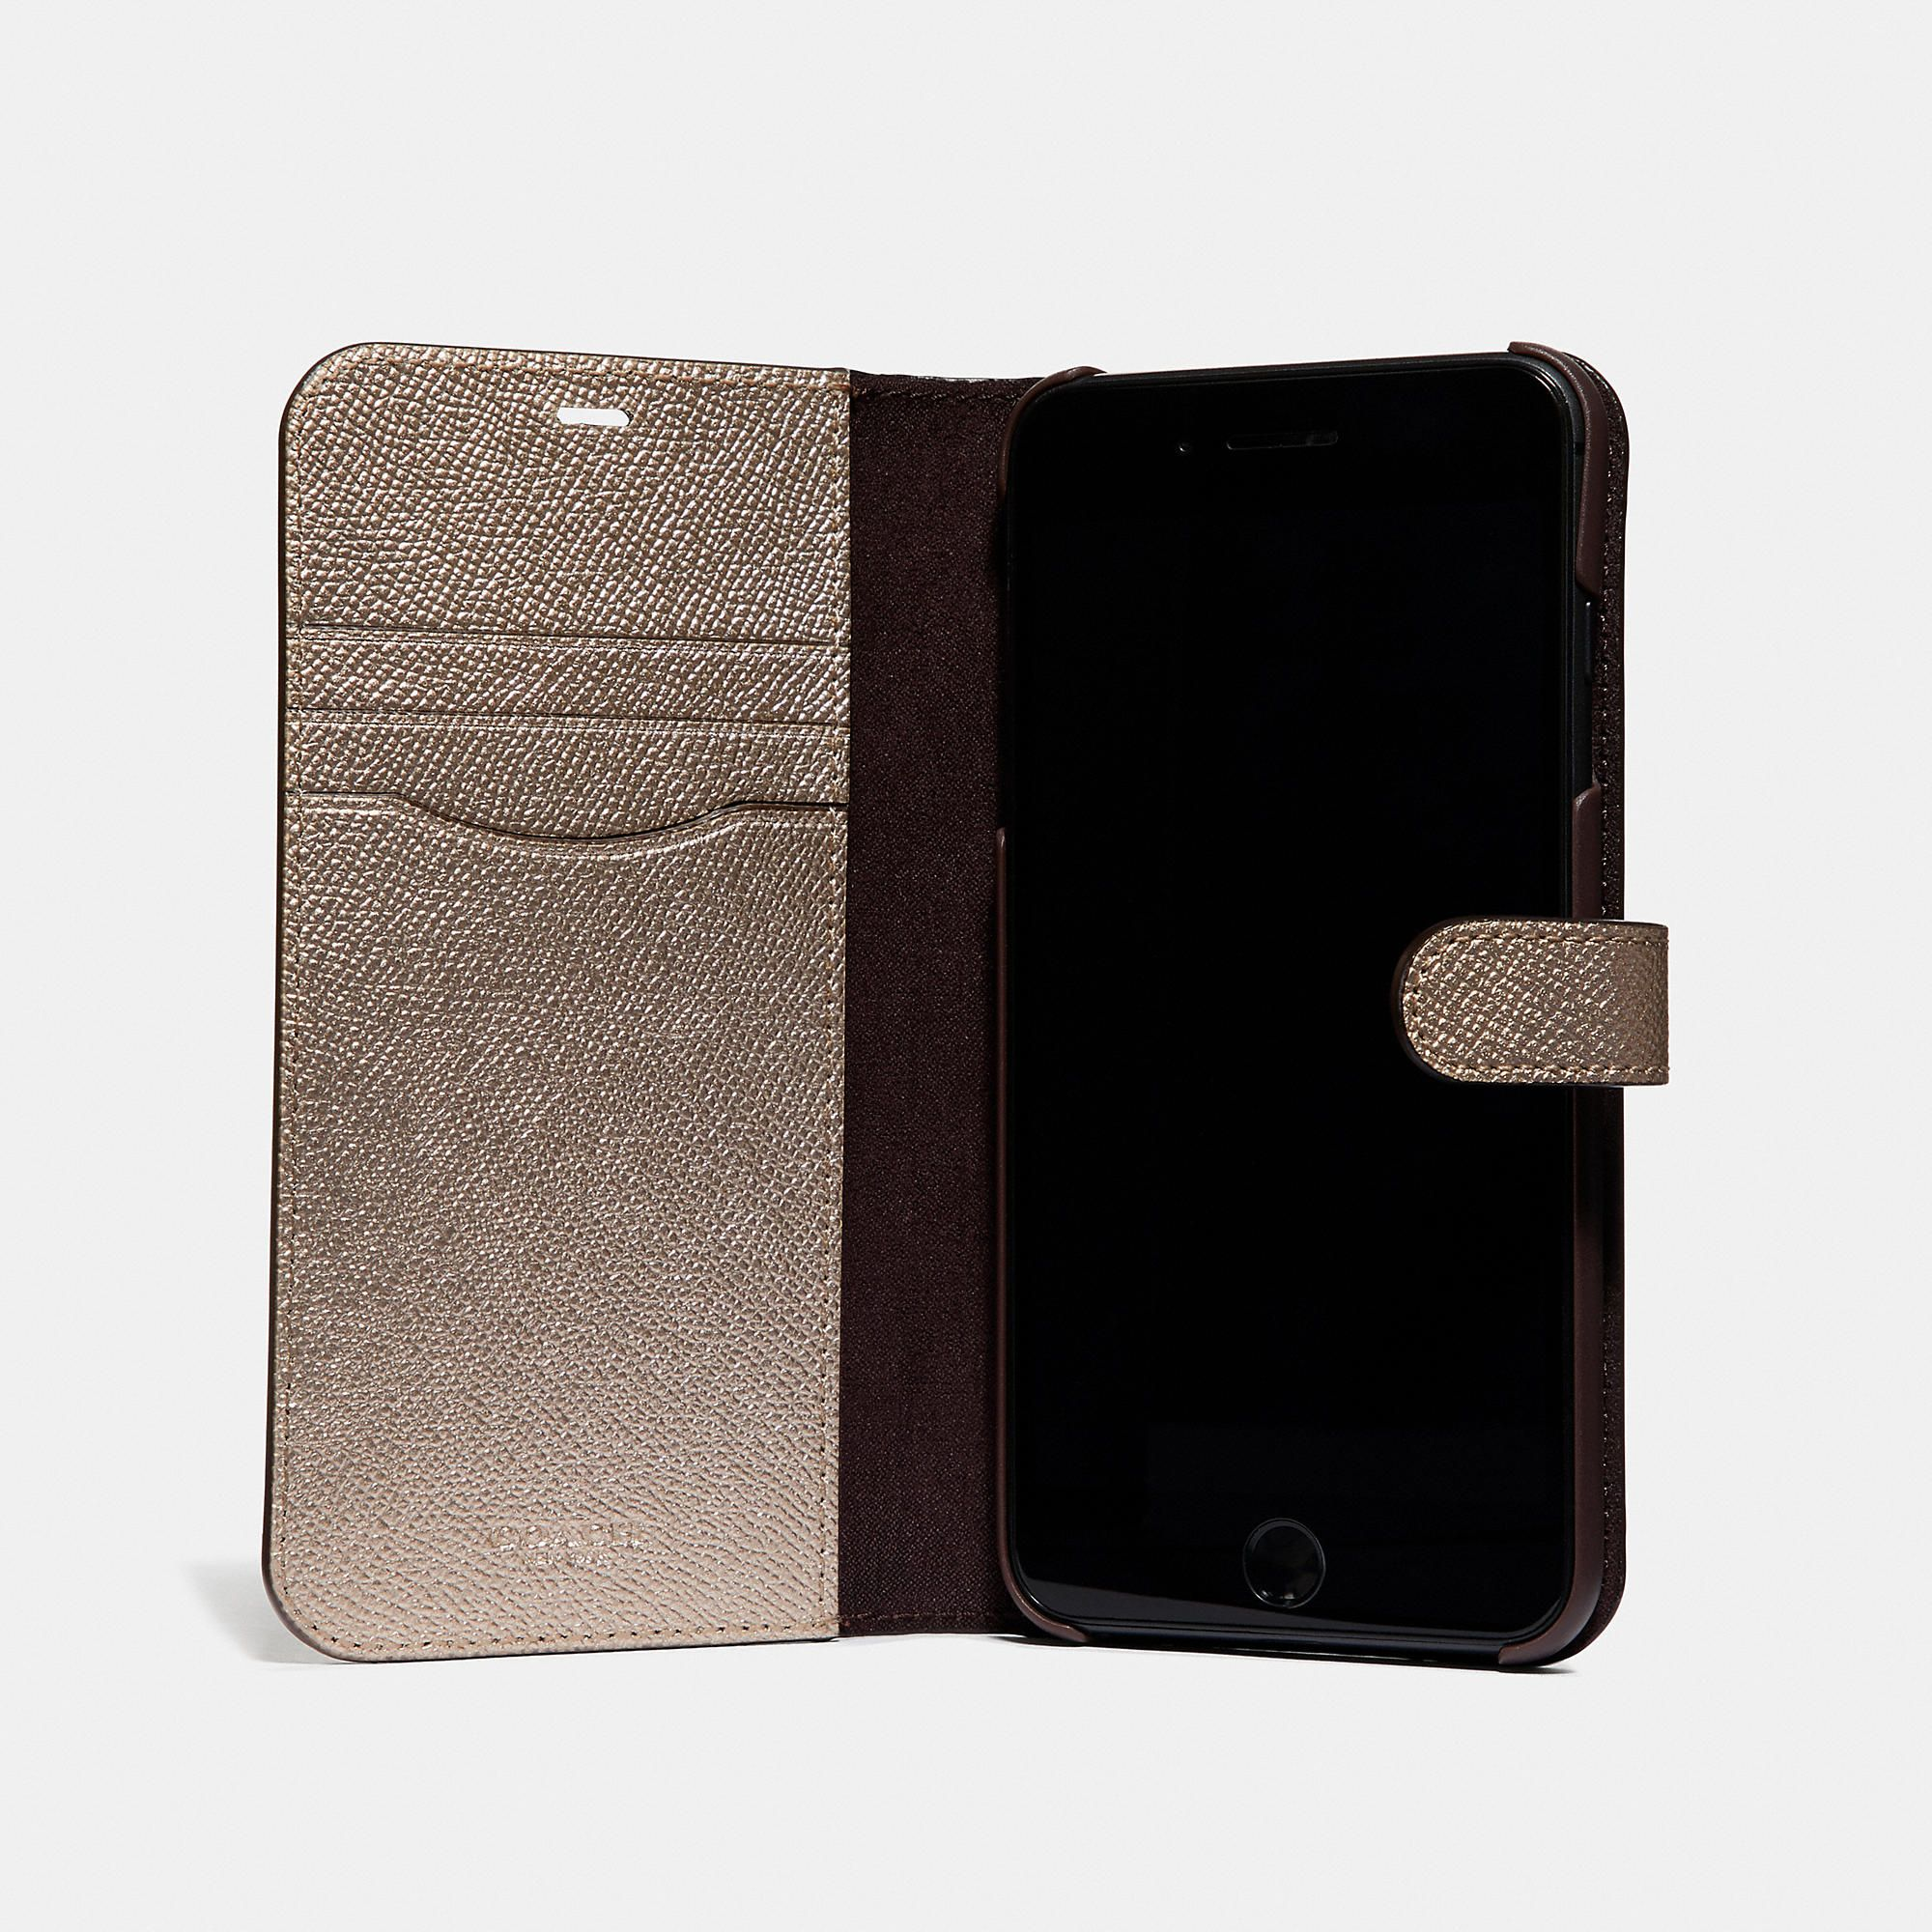 info for 9345d 92f7e Iphone xs max folio in 2019 | Products | Iphone phone cases, Latest ...